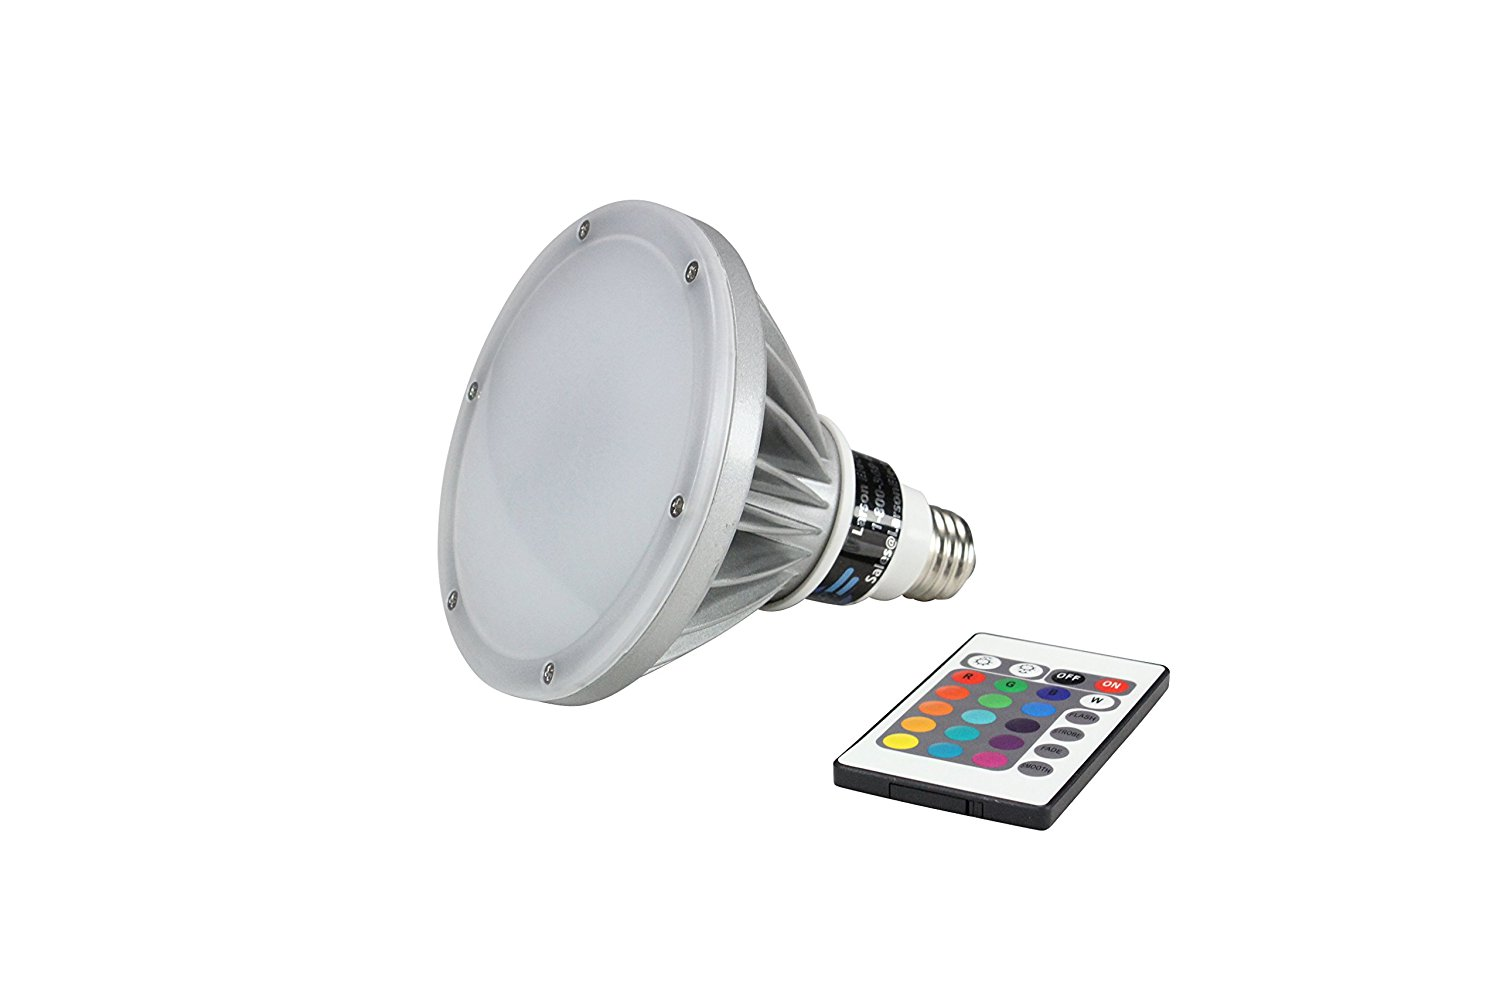 18 Watt RGB LED PAR 38 Remote Control Light - Dimmable - Color Changing Bulb(-Memory-Spot)